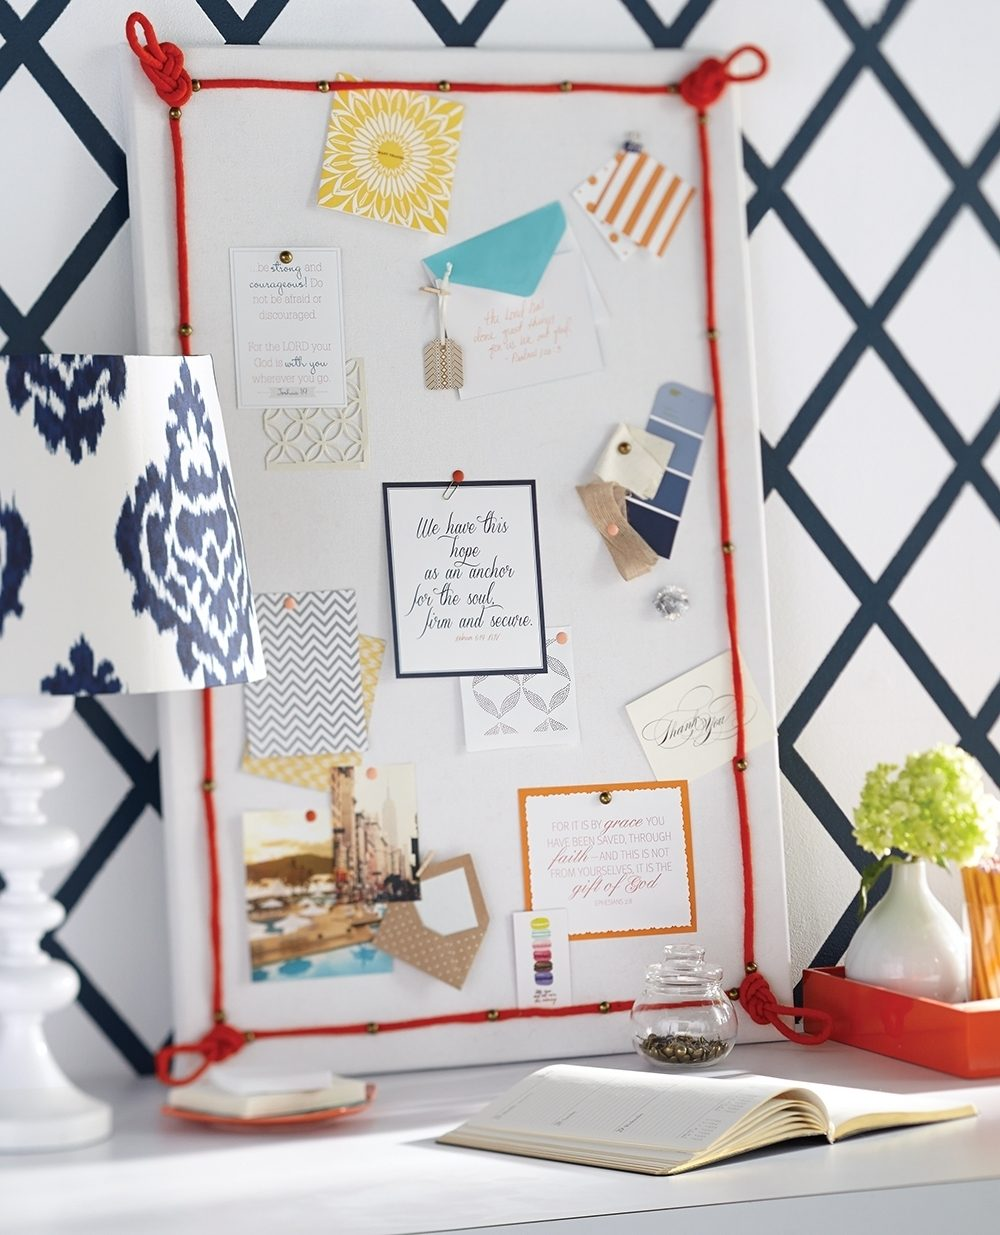 This Knot Board starts with a preframed cork board wrapped in a piece of fabric, softening the hard lines and creating a looser style. Colorful cording is hot-glued and pinned to the board with upholstery tacks. Sailor's knots are glued to the corners. Paint thumb tacks to personalize your board.